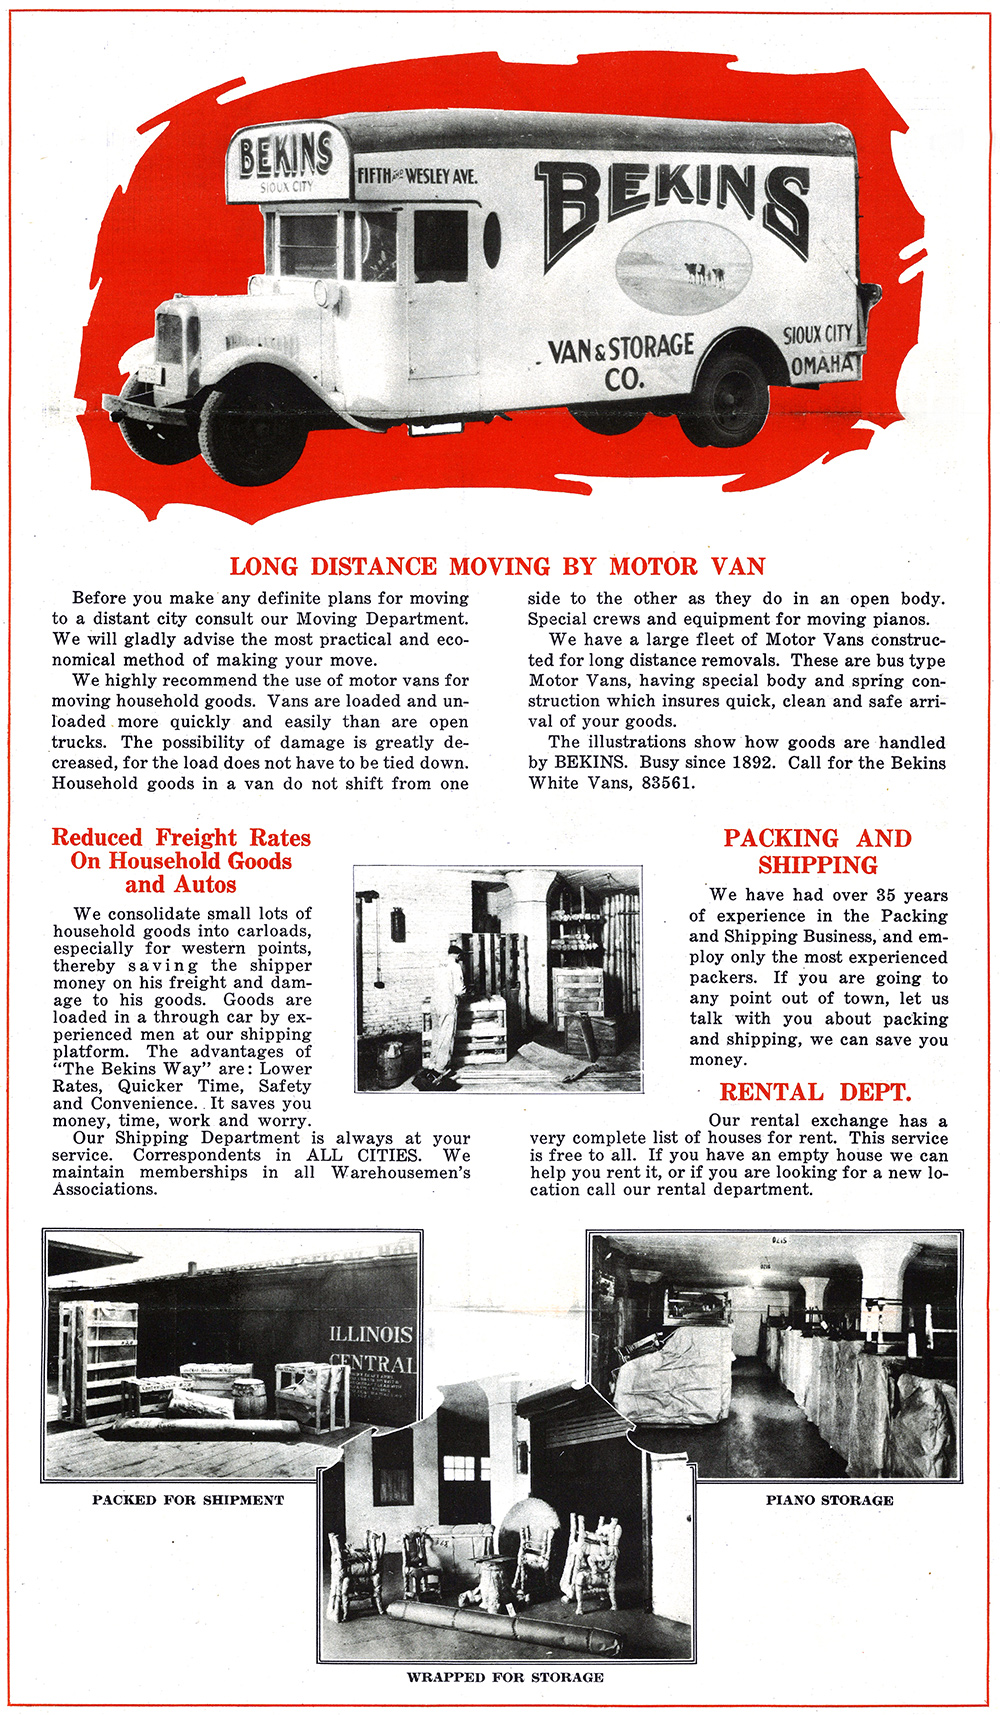 Retro - Bekins Long Distance Moving Van